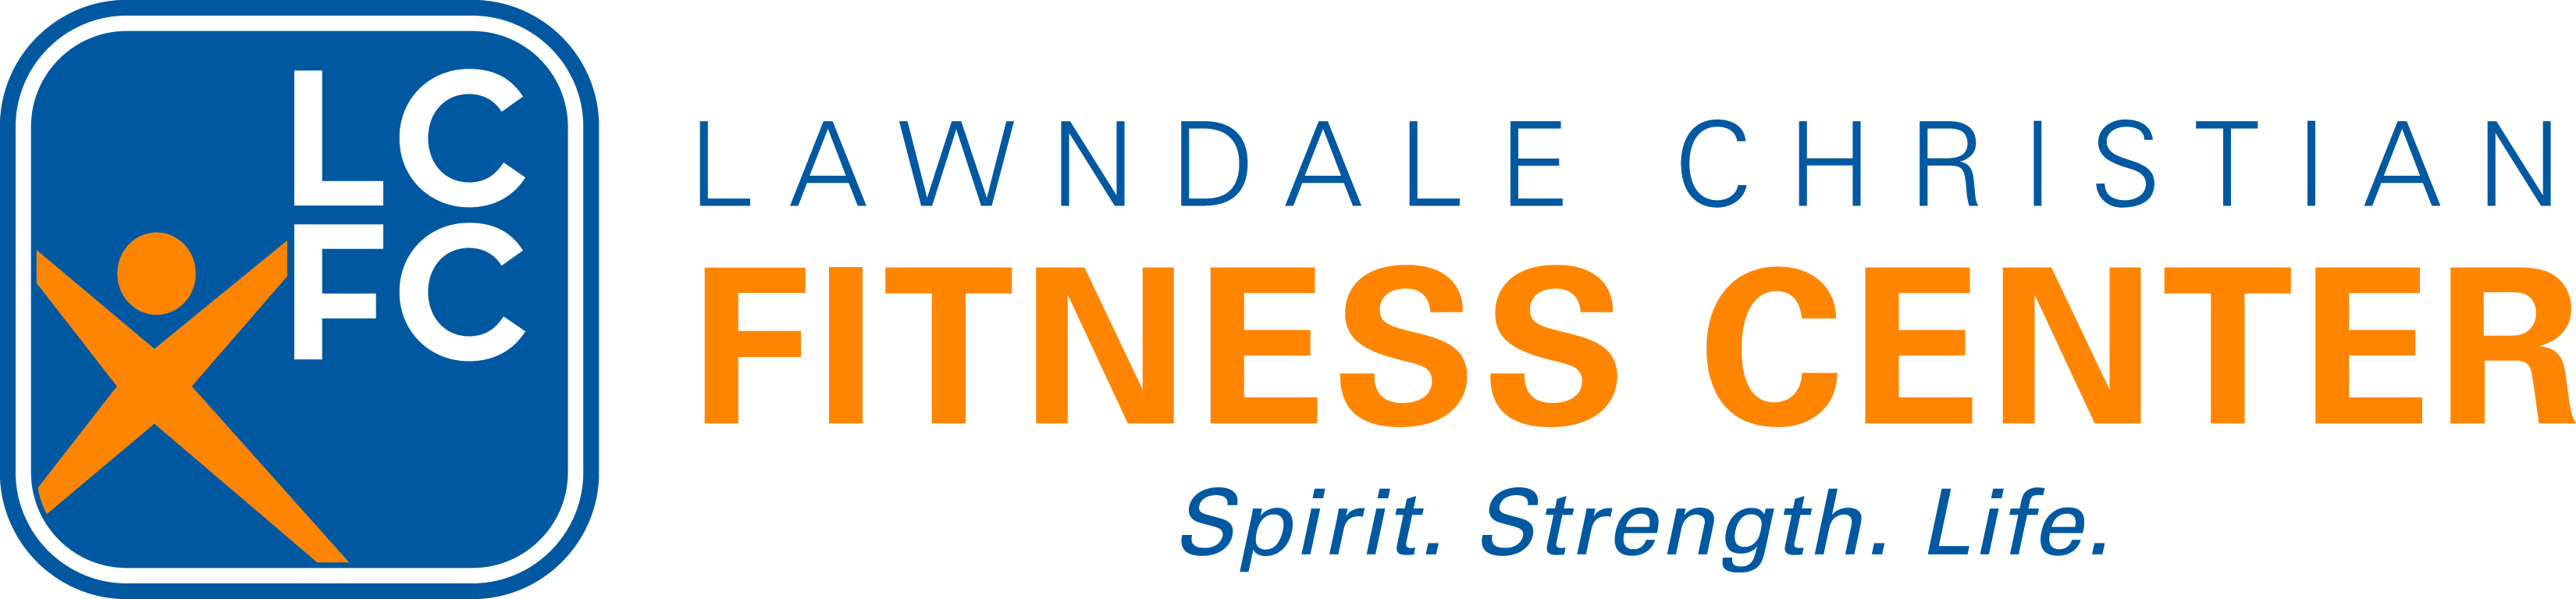 LCHC Fitness Center Logo